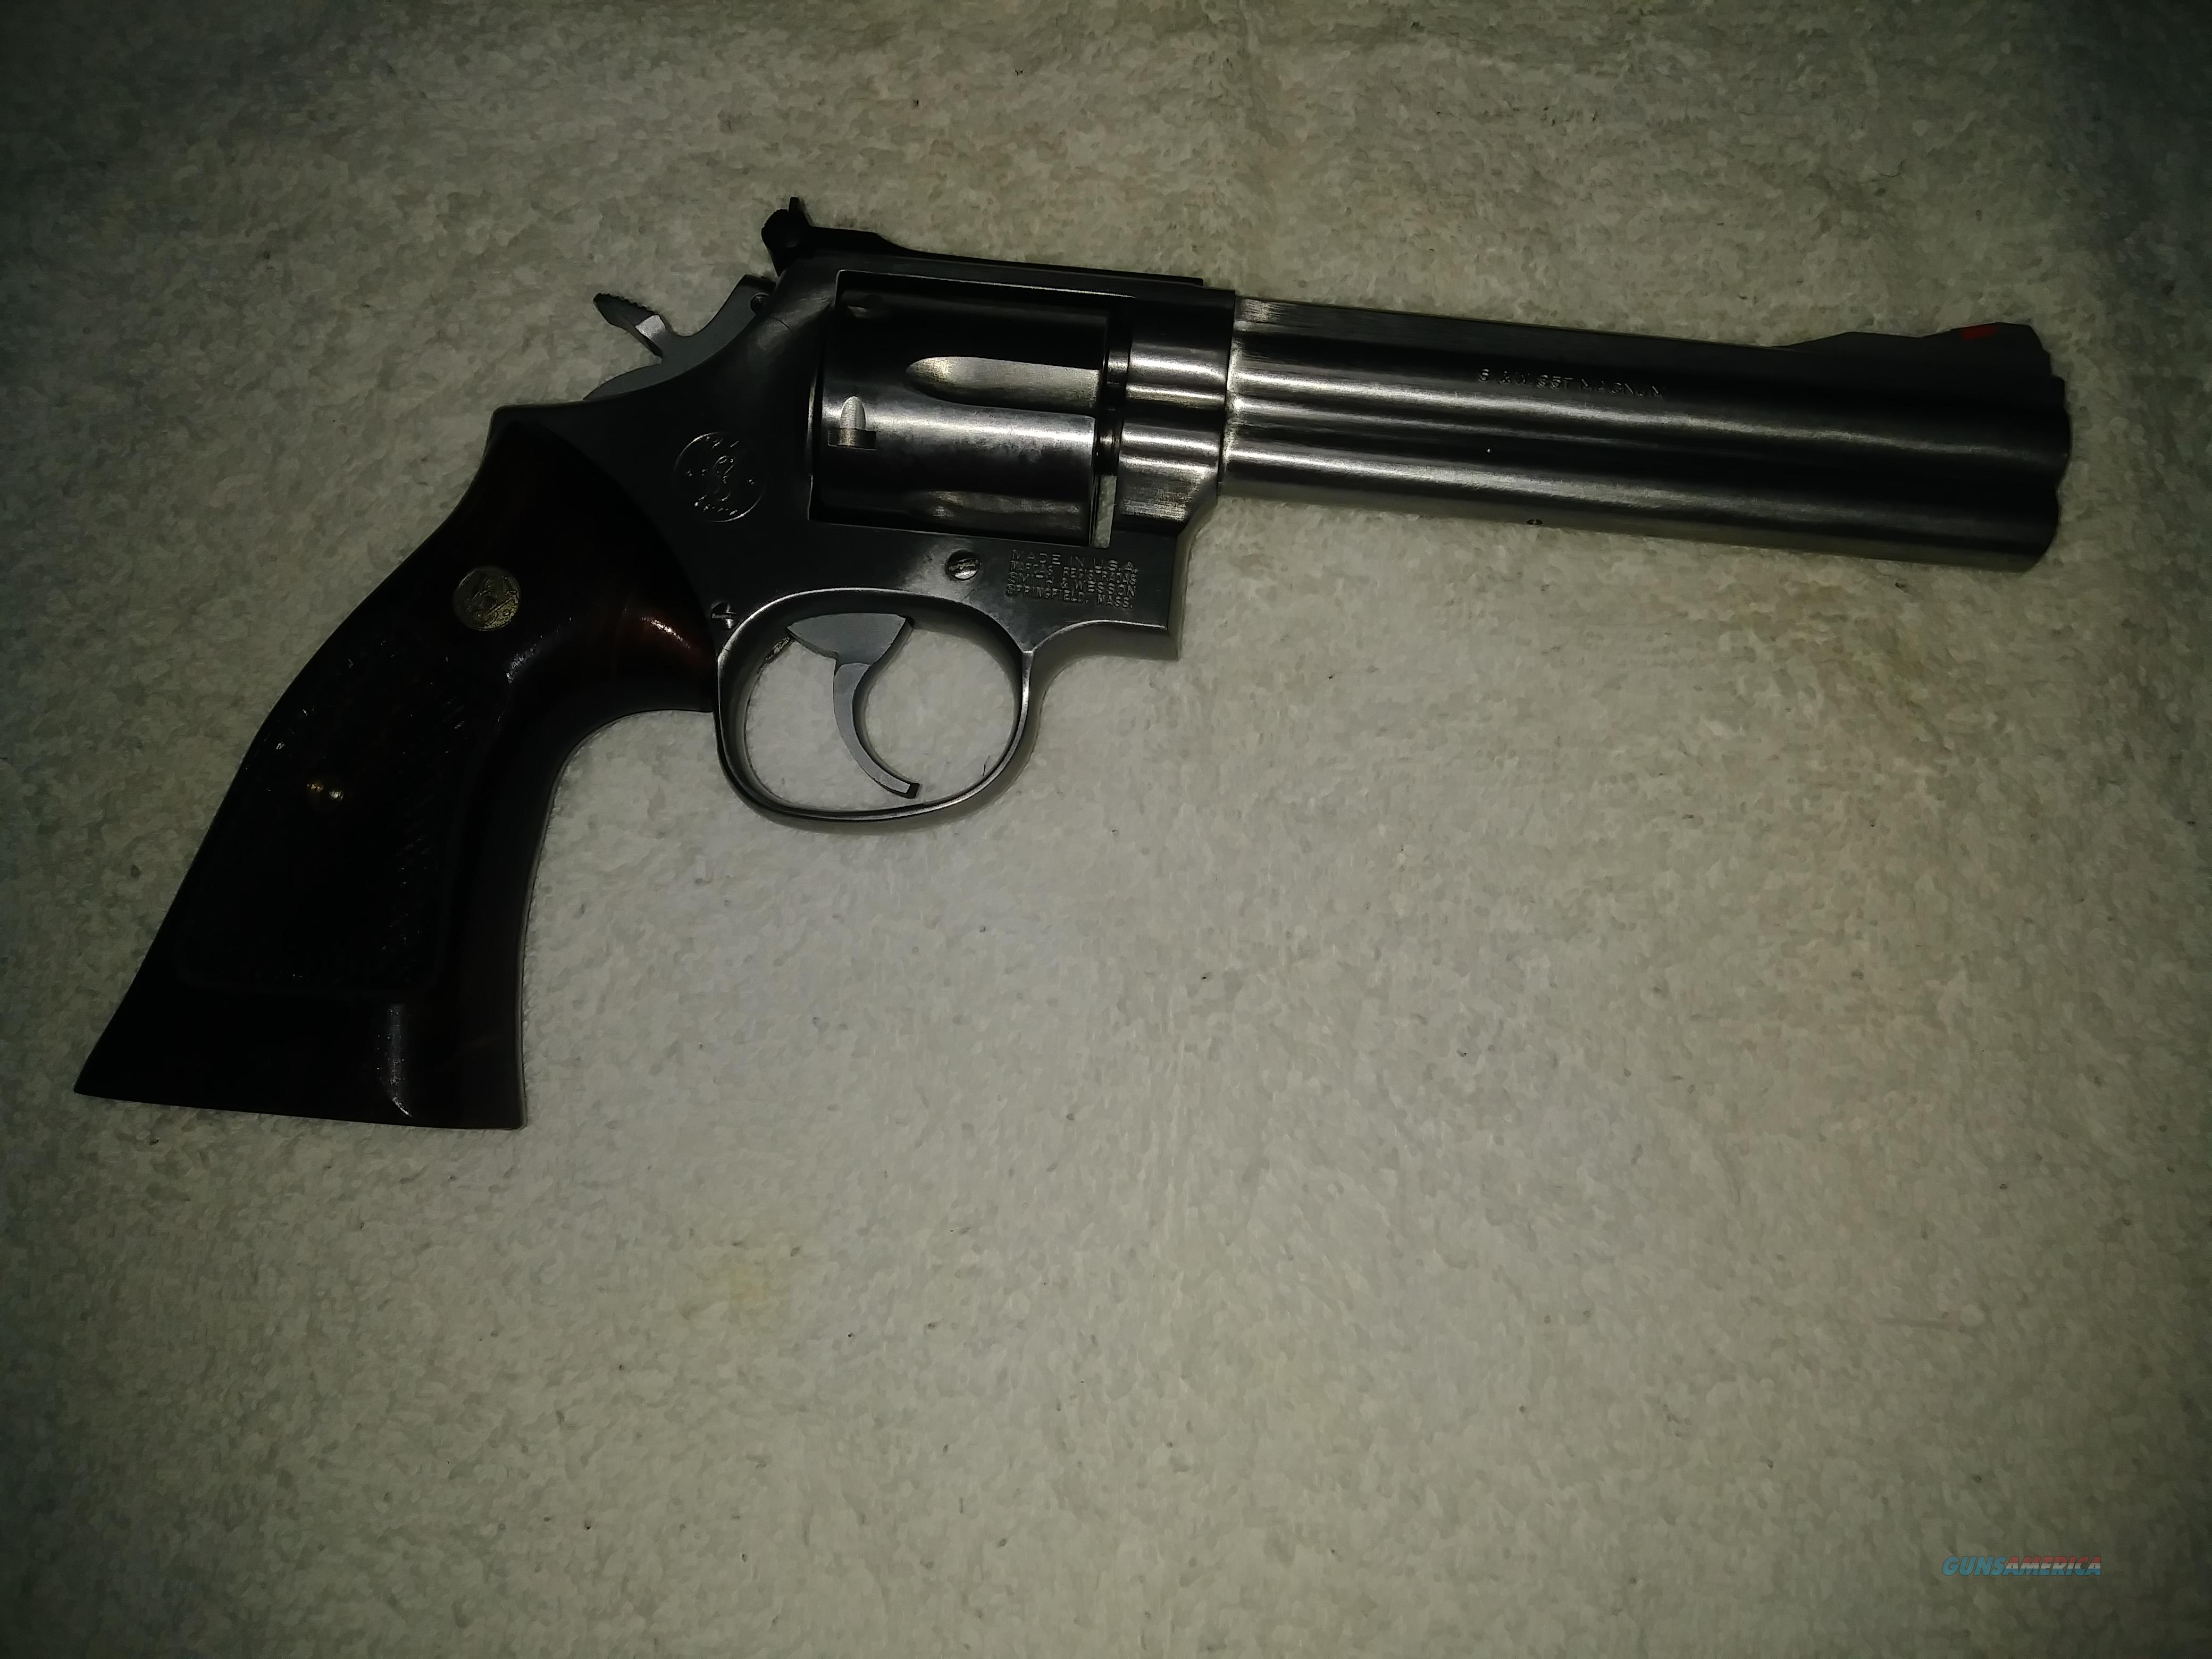 S and W model 686 - 3 SS 6 inch dist. combat magnum WO - red ramp  Guns > Pistols > Smith & Wesson Revolvers > Med. Frame ( K/L )